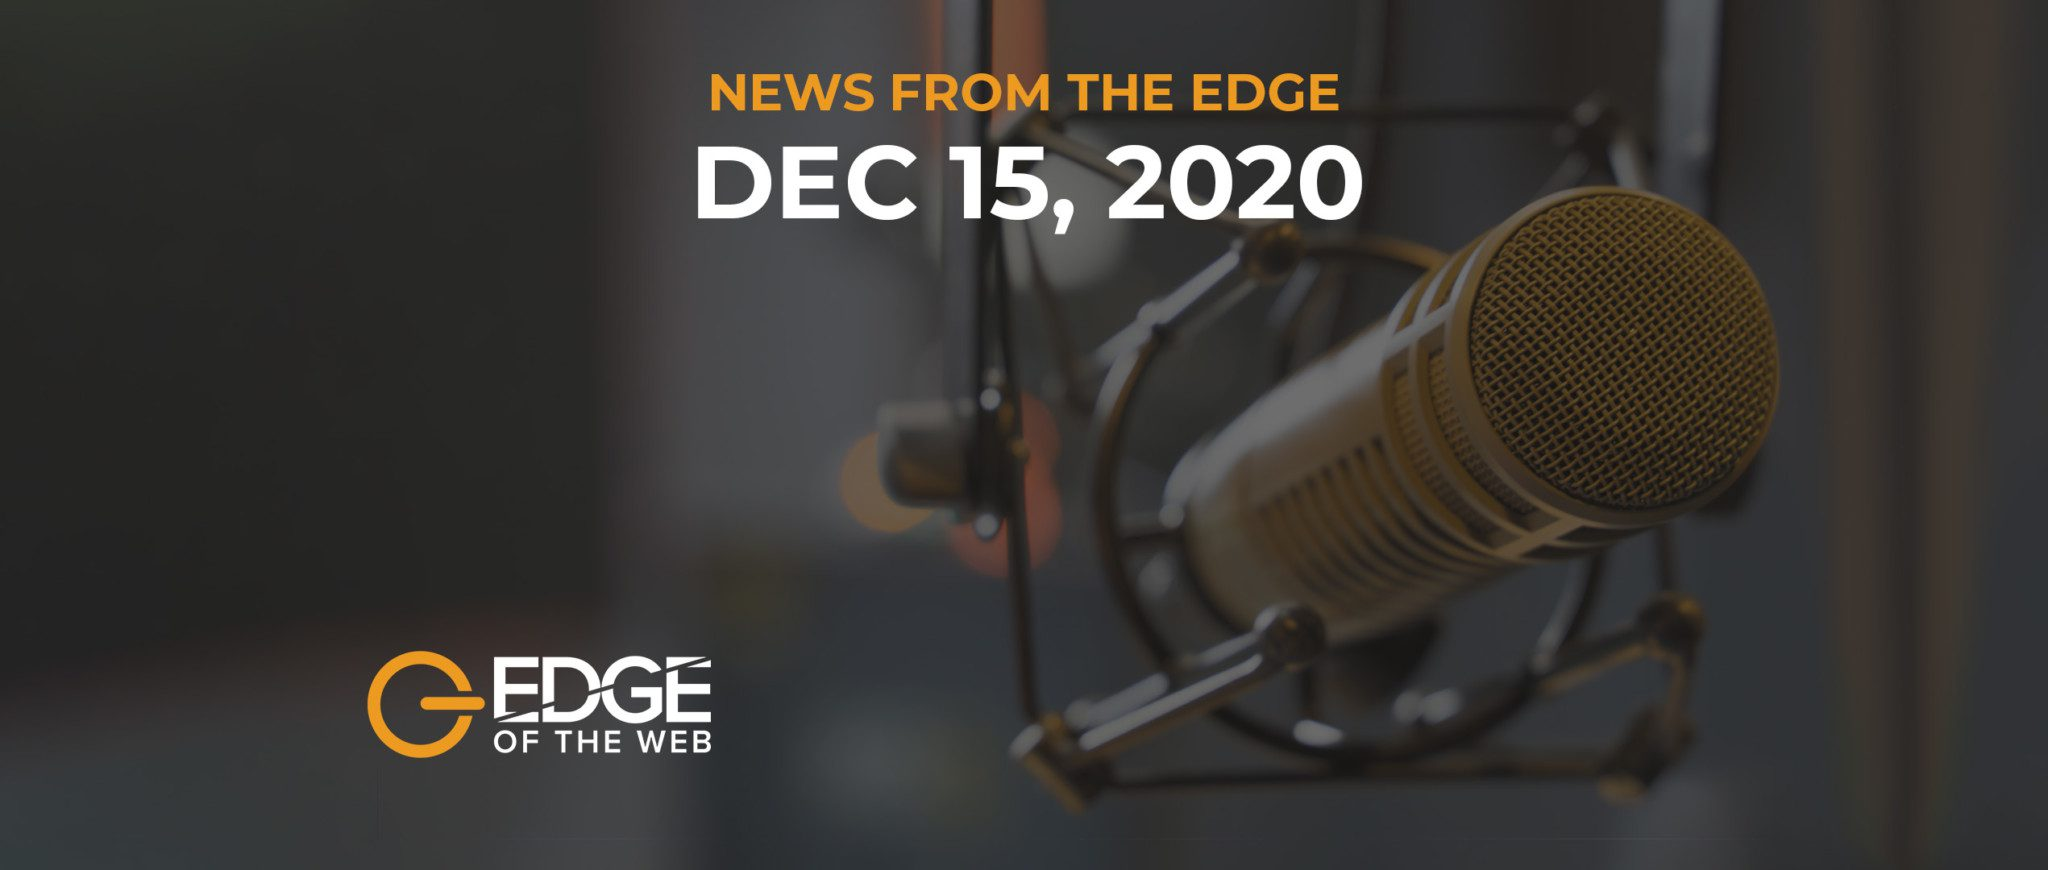 378 | News from the EDGE :  Week of December 14, 2020